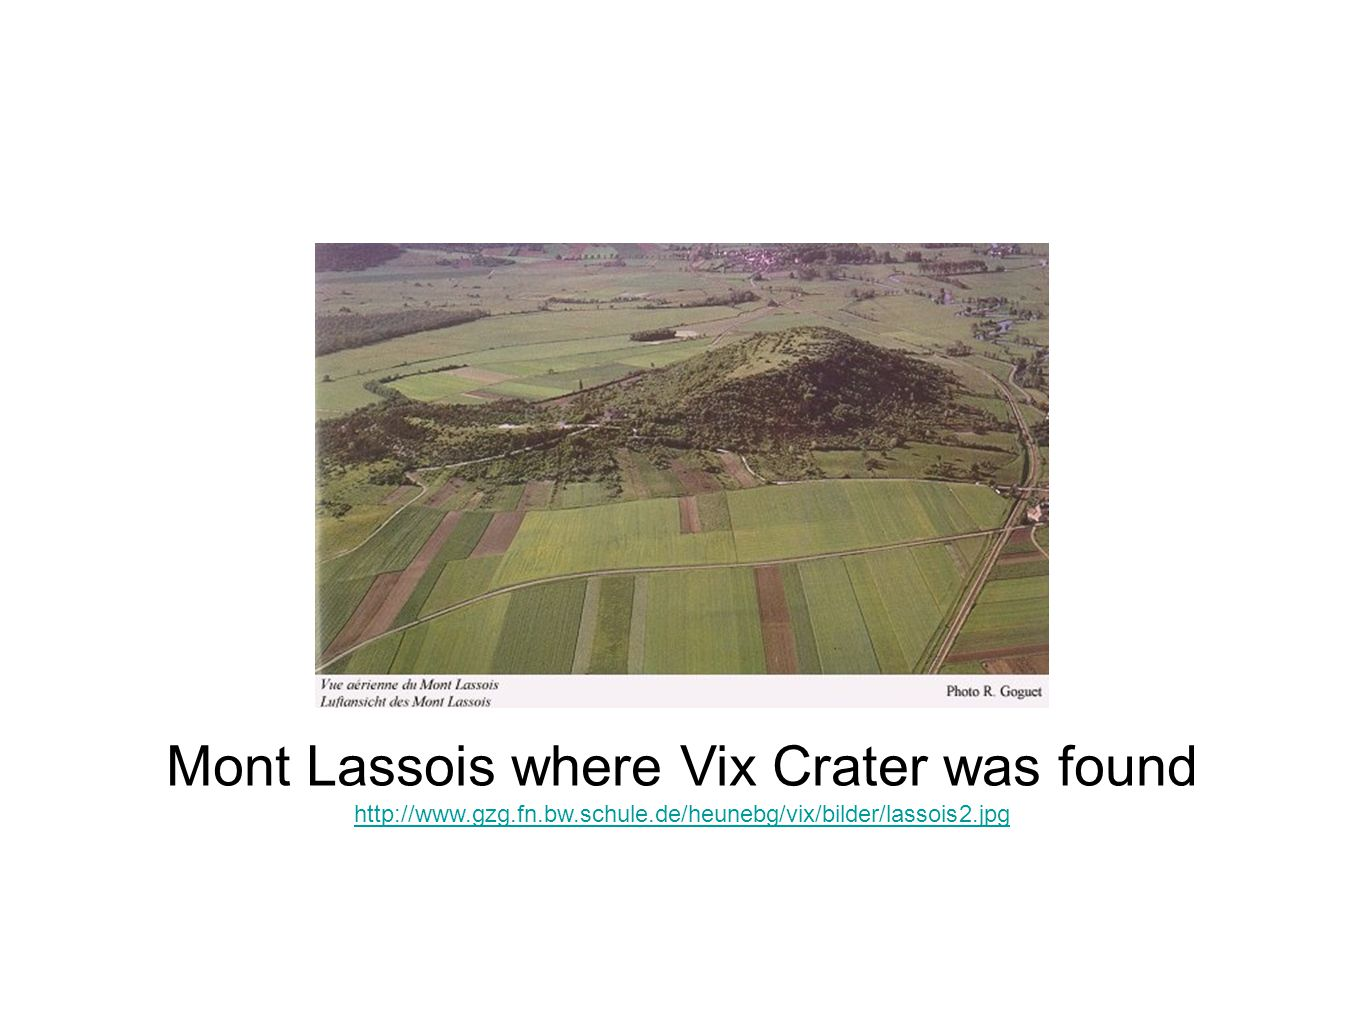 Mont Lassois where Vix Crater was found